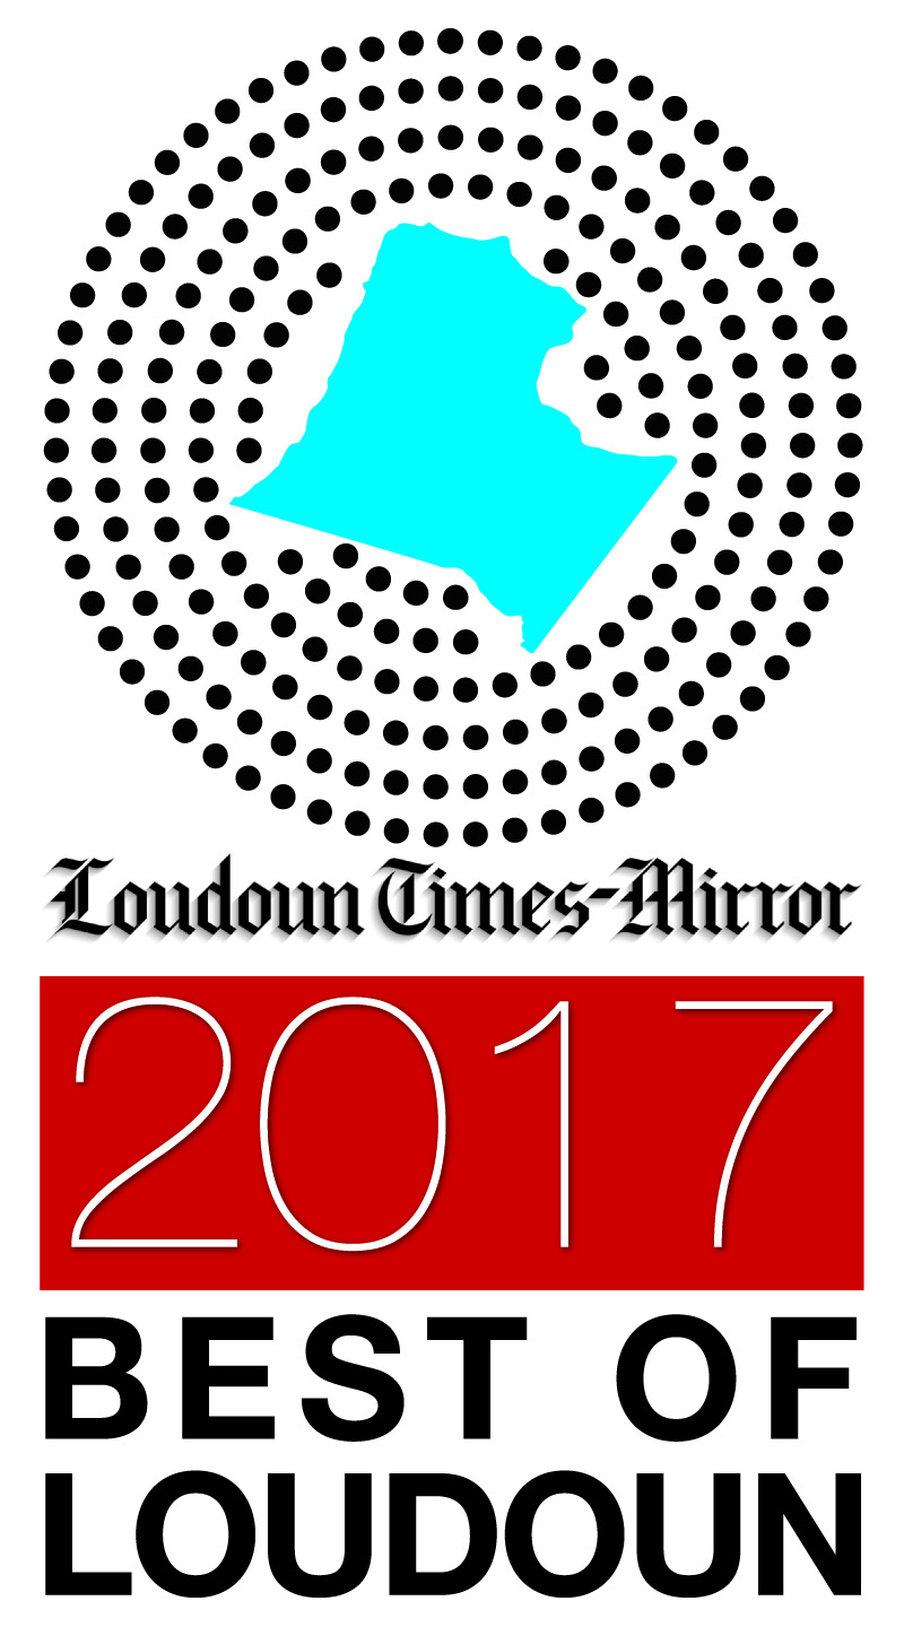 Best of Loudoun Award 2017